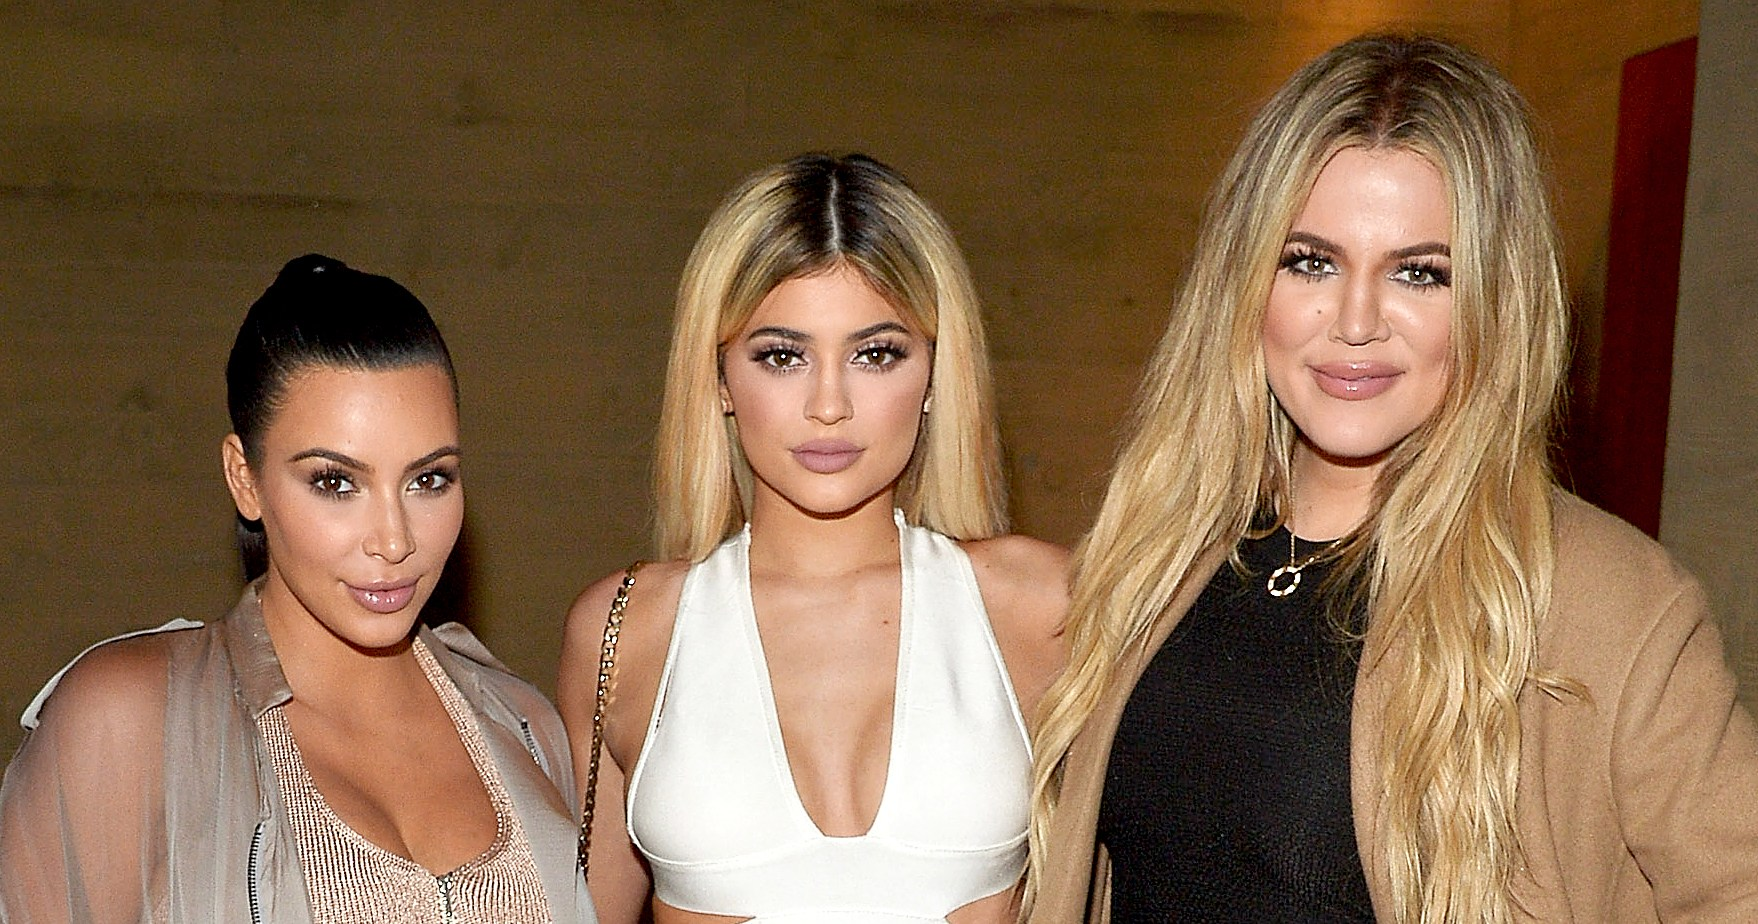 Kim, Khloe Kardashian, Kylie Jenner File to Trademark Kids' Names: Report